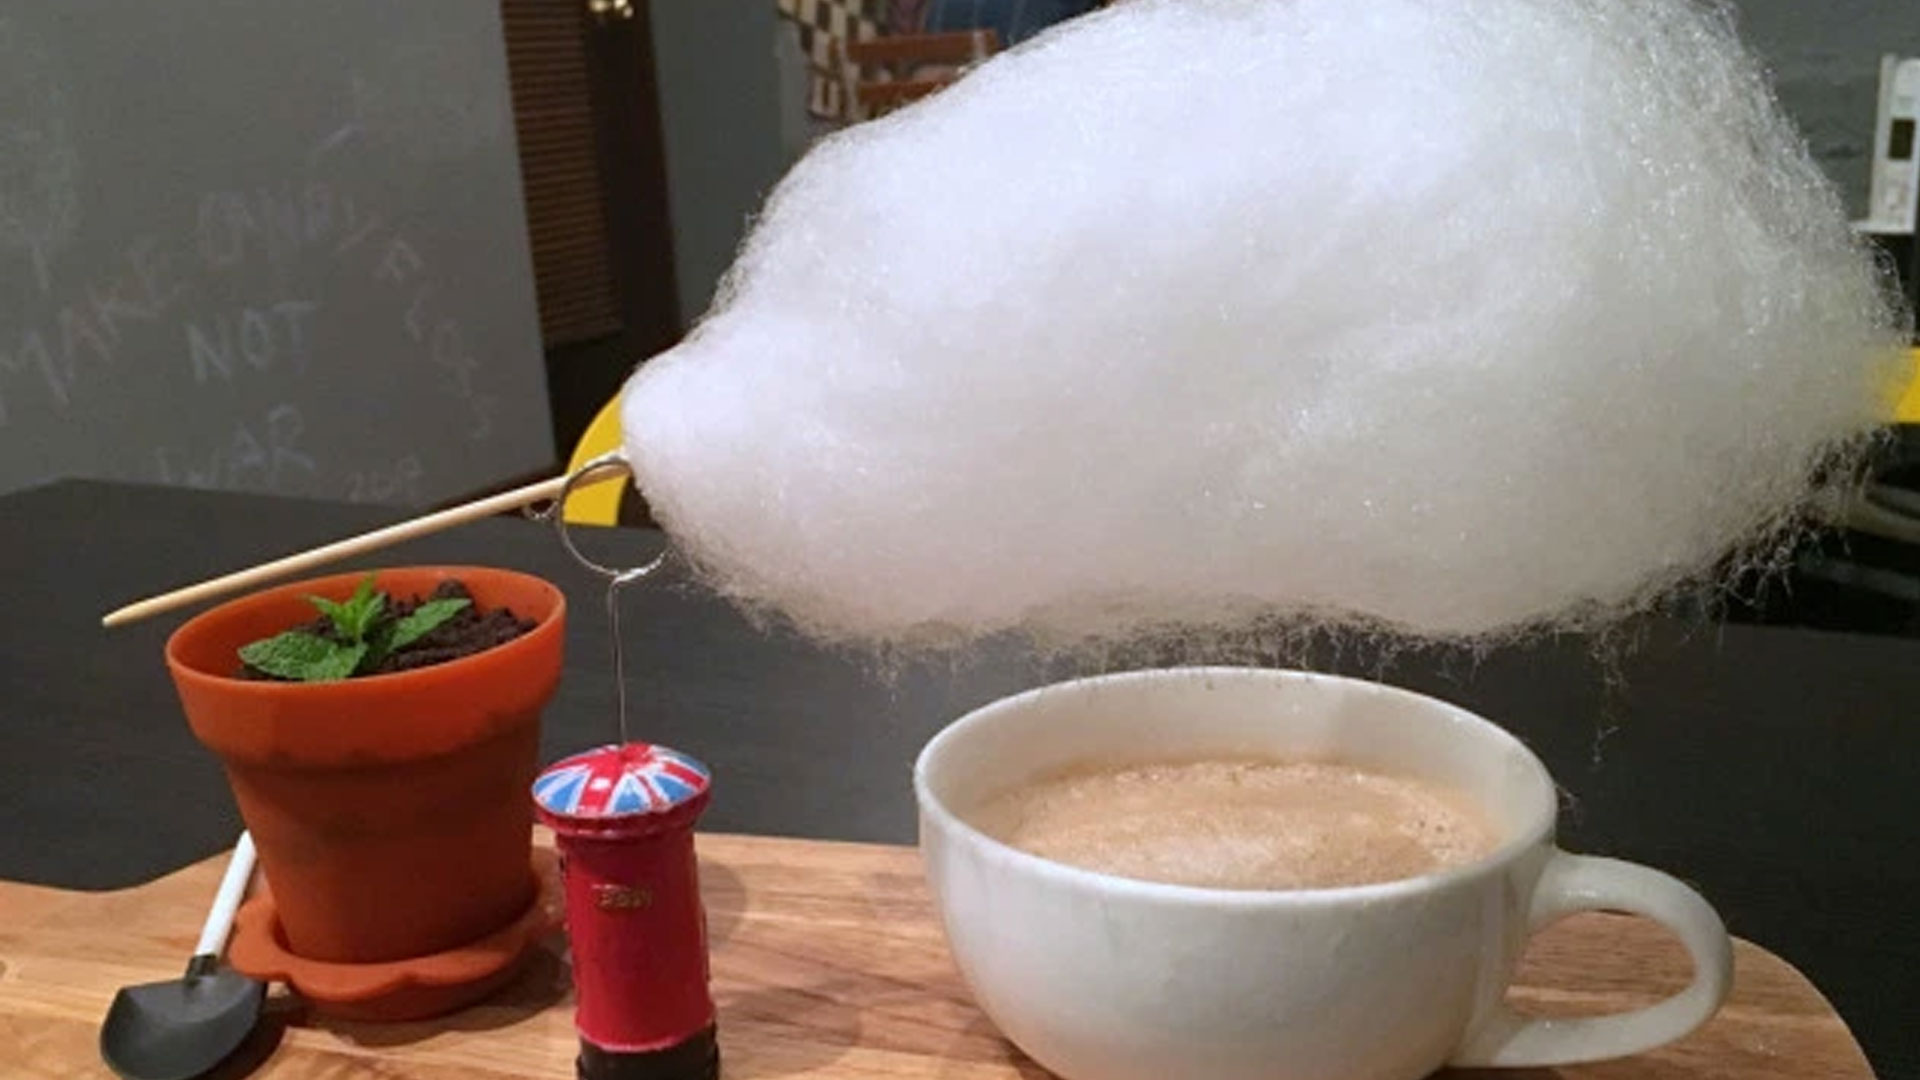 This-Cafe-in-Shanghai-serves-Coffee-with-Cotton-Candy;-It-looks-Magical!